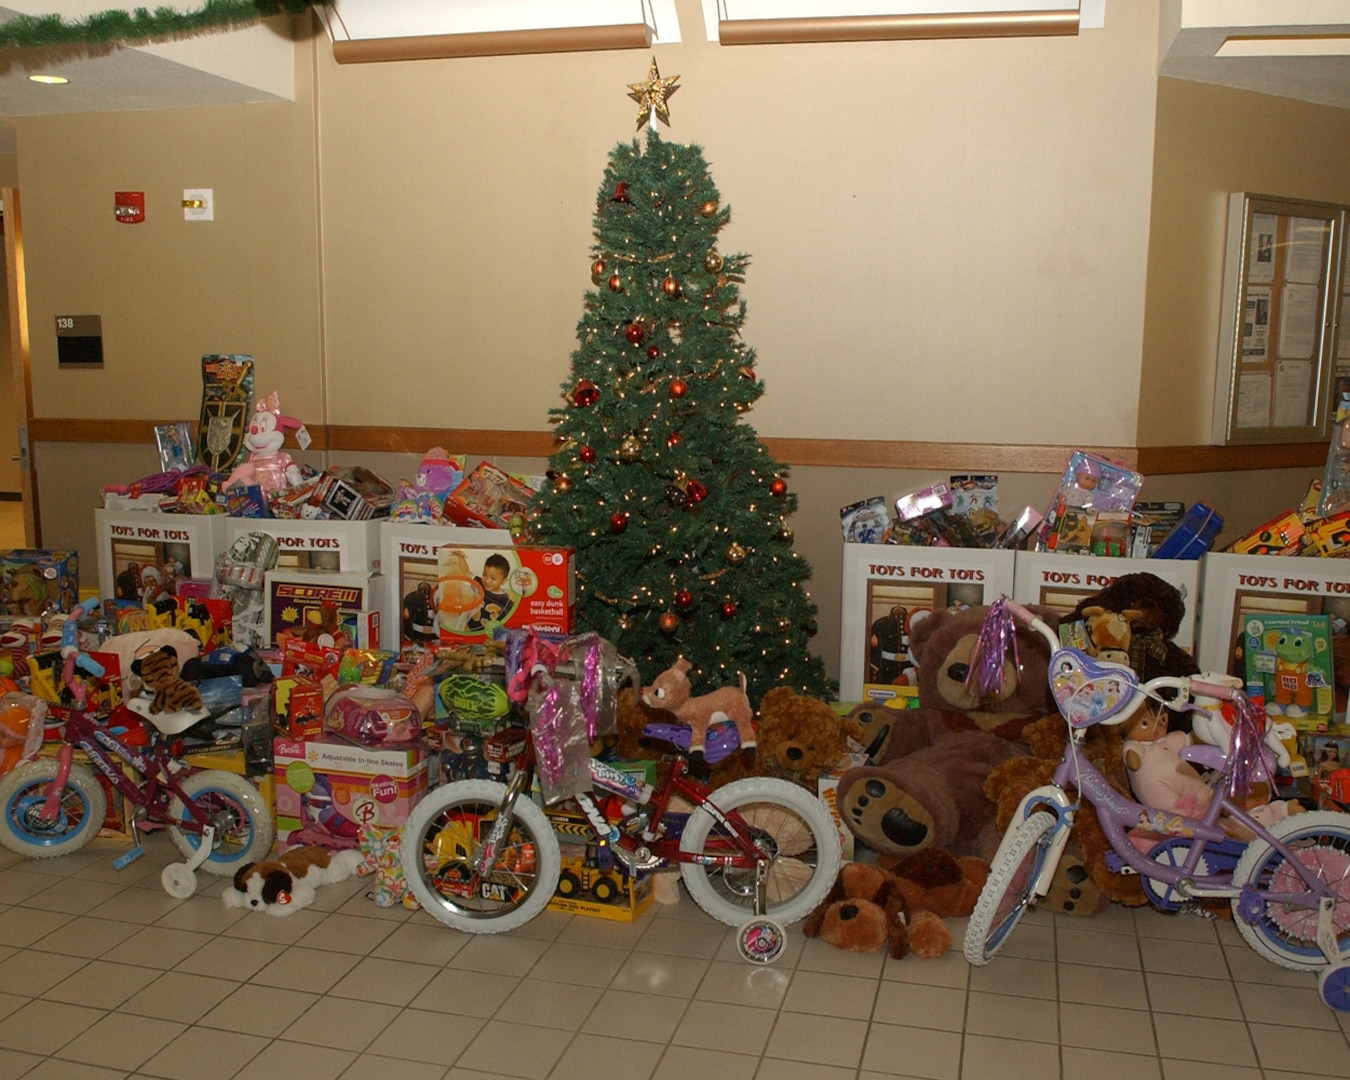 12/15/2008 - More than $4,000 worth of toys were collected by basic military trainees from the 343rd Training Squadron for Toys for Tots. Since its inception, Toys for Tots has given more than 370 million toys to needy children throughout the United States. (USAF photo by Alan Boedeker)